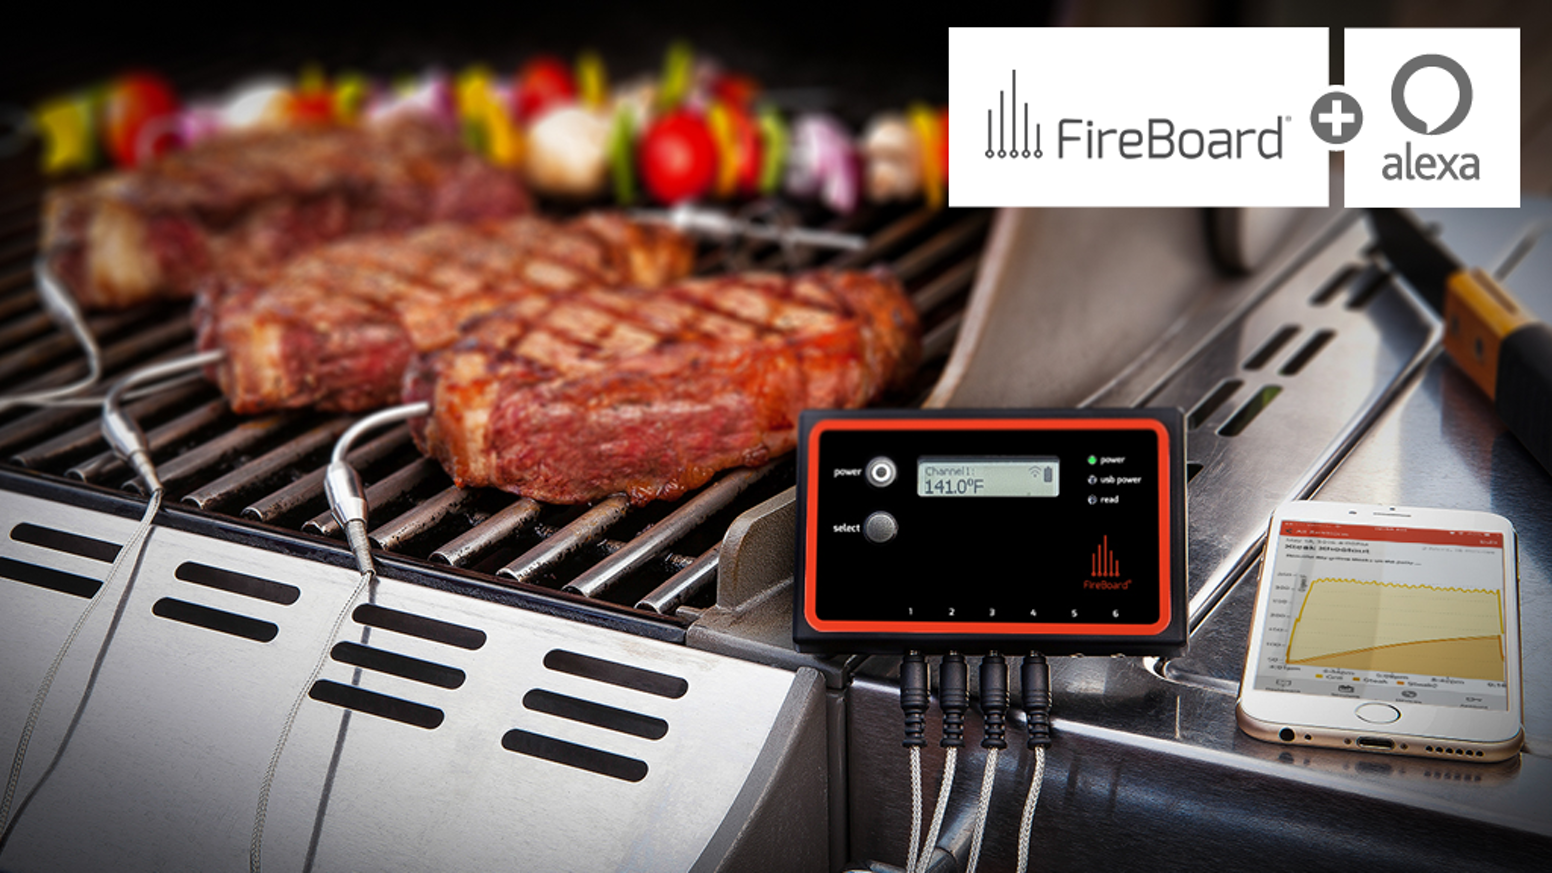 Get yours at FireBoard.com - Most orders ship same day! Monitor your cooking & bbq from your phone - and Amazon Alexa!  Synced conveniently to the cloud via WiFi and Bluetooth.